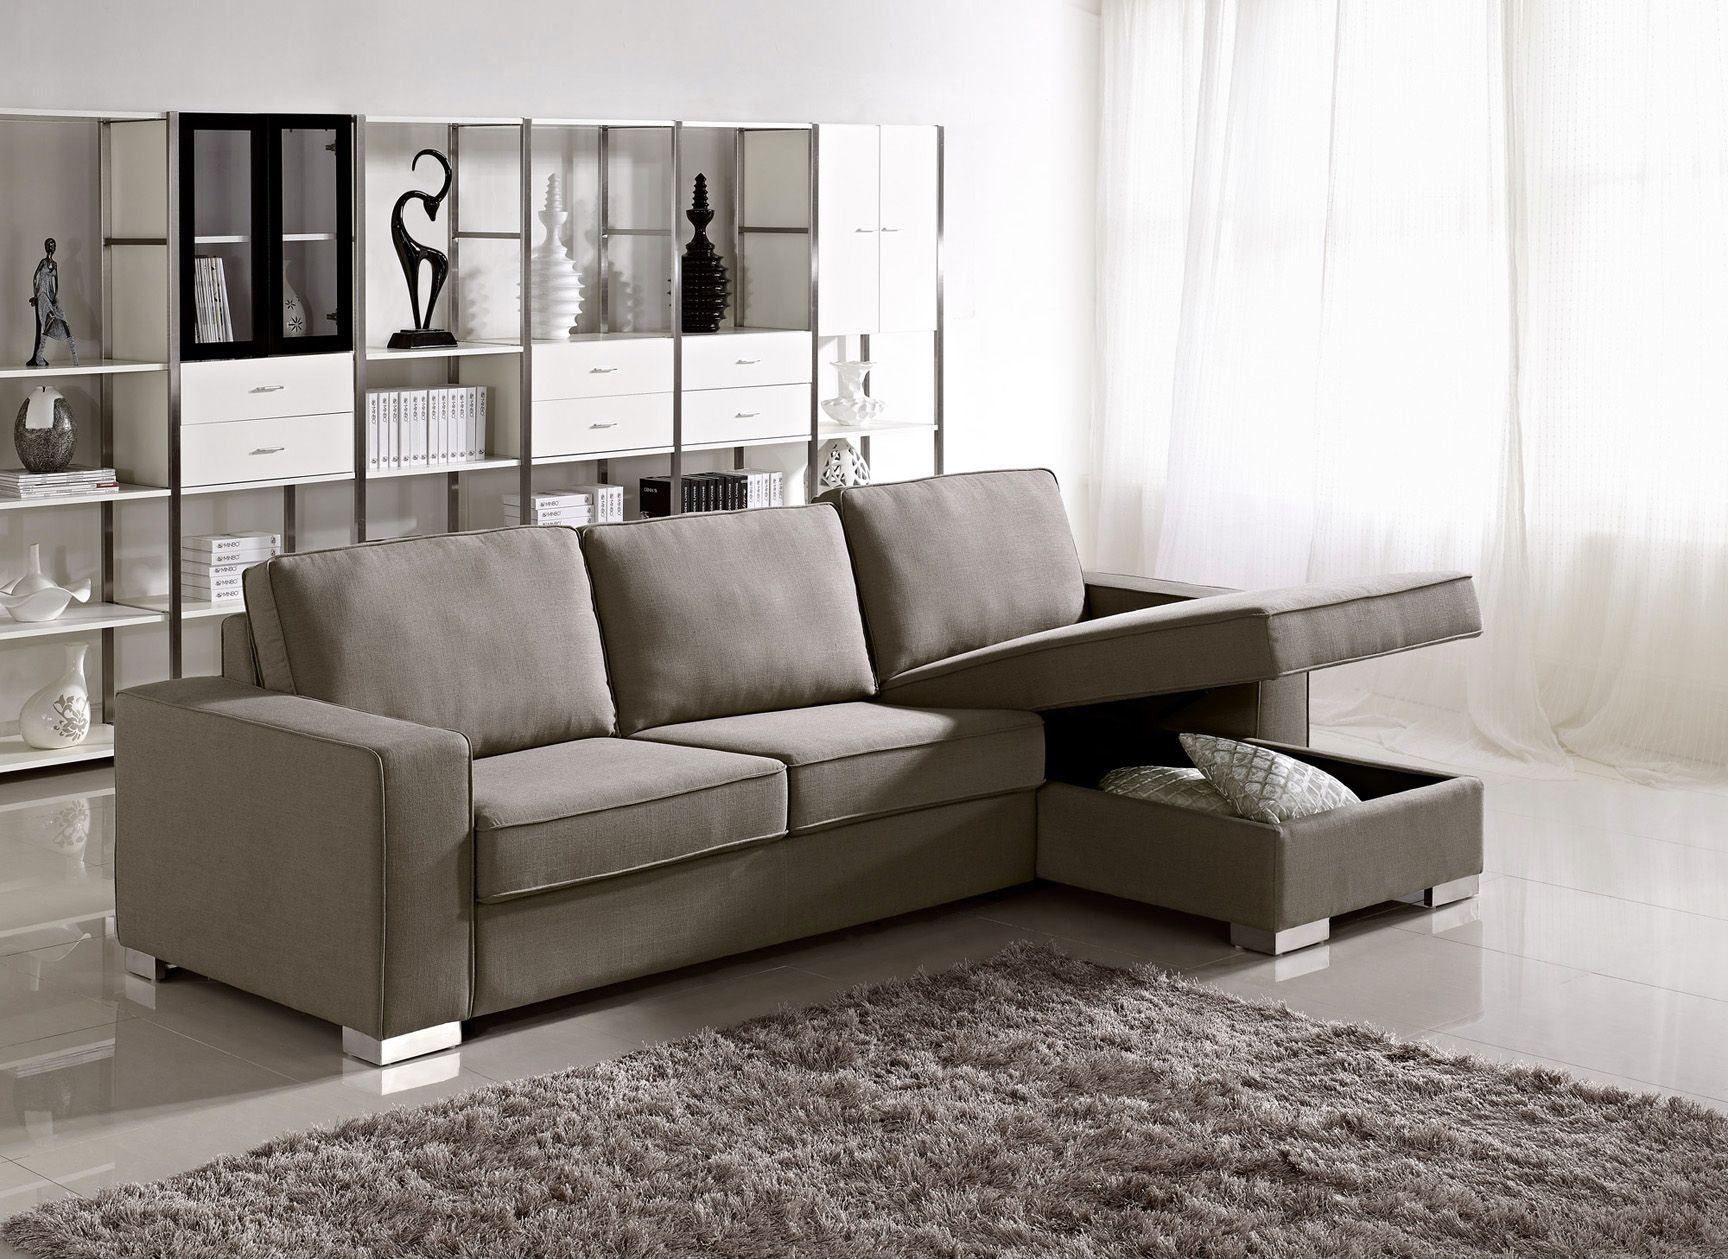 Sectional Sofas For Small Spaces Big Lots Surripui Inside Apartment Sectional Sofa With Chaise (#10 of 12)